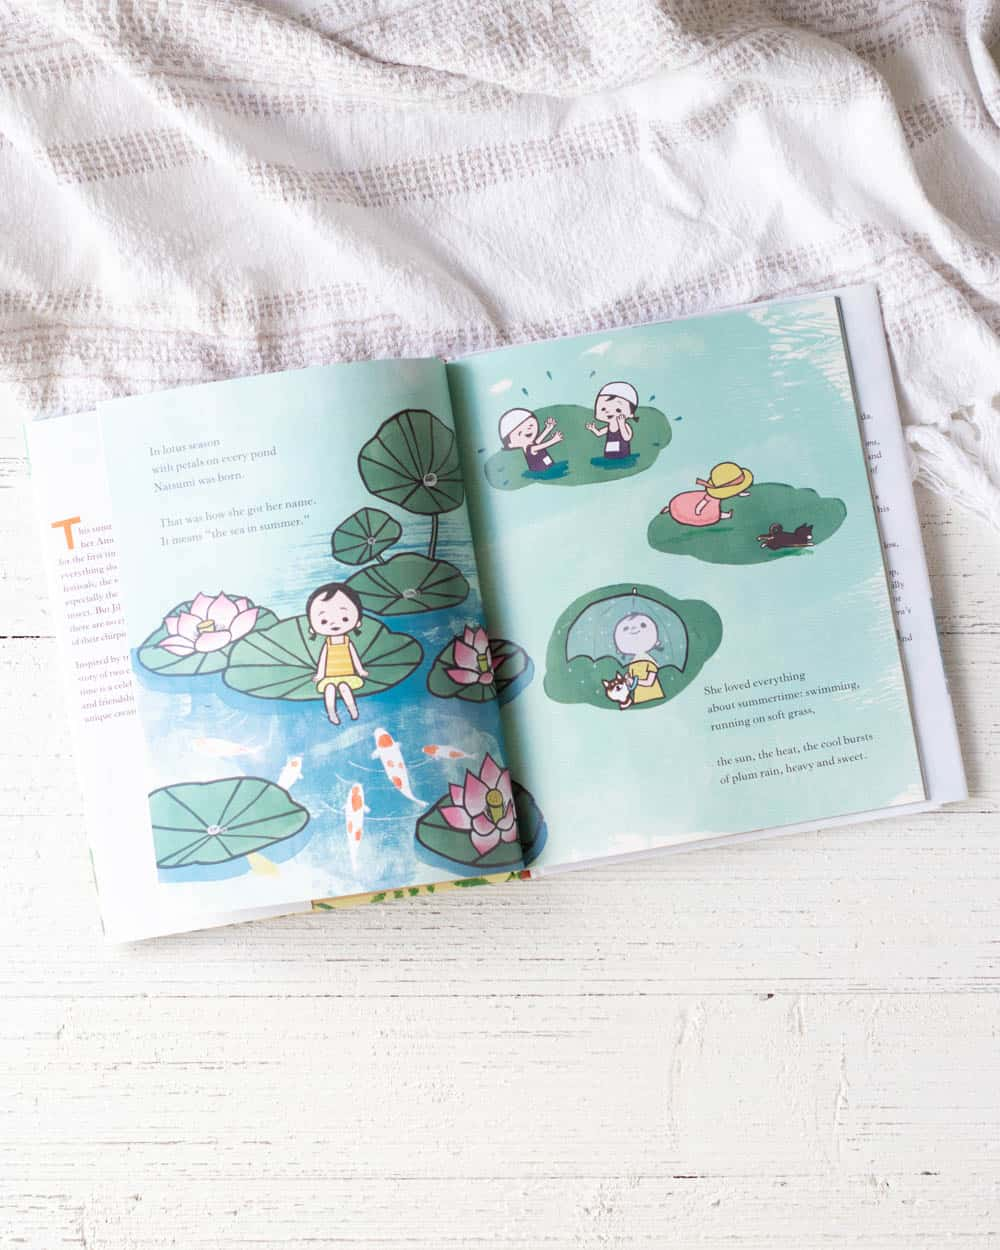 Natsumi's Song of a Summer, a kids' picture book.